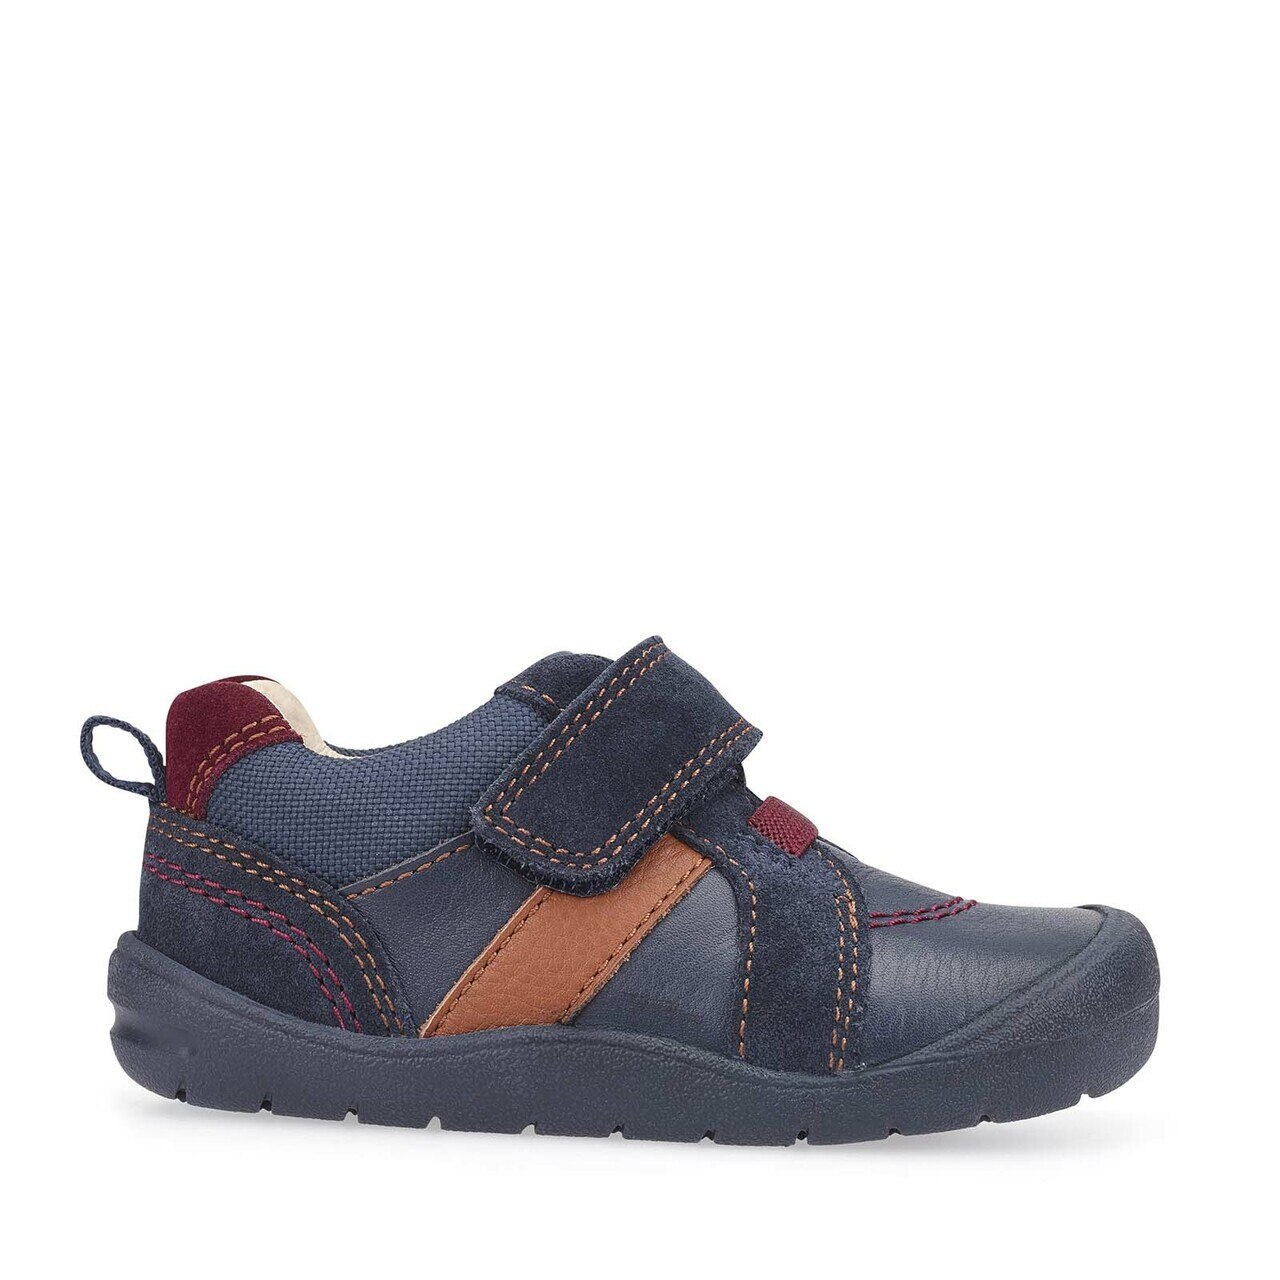 boys walking shoes